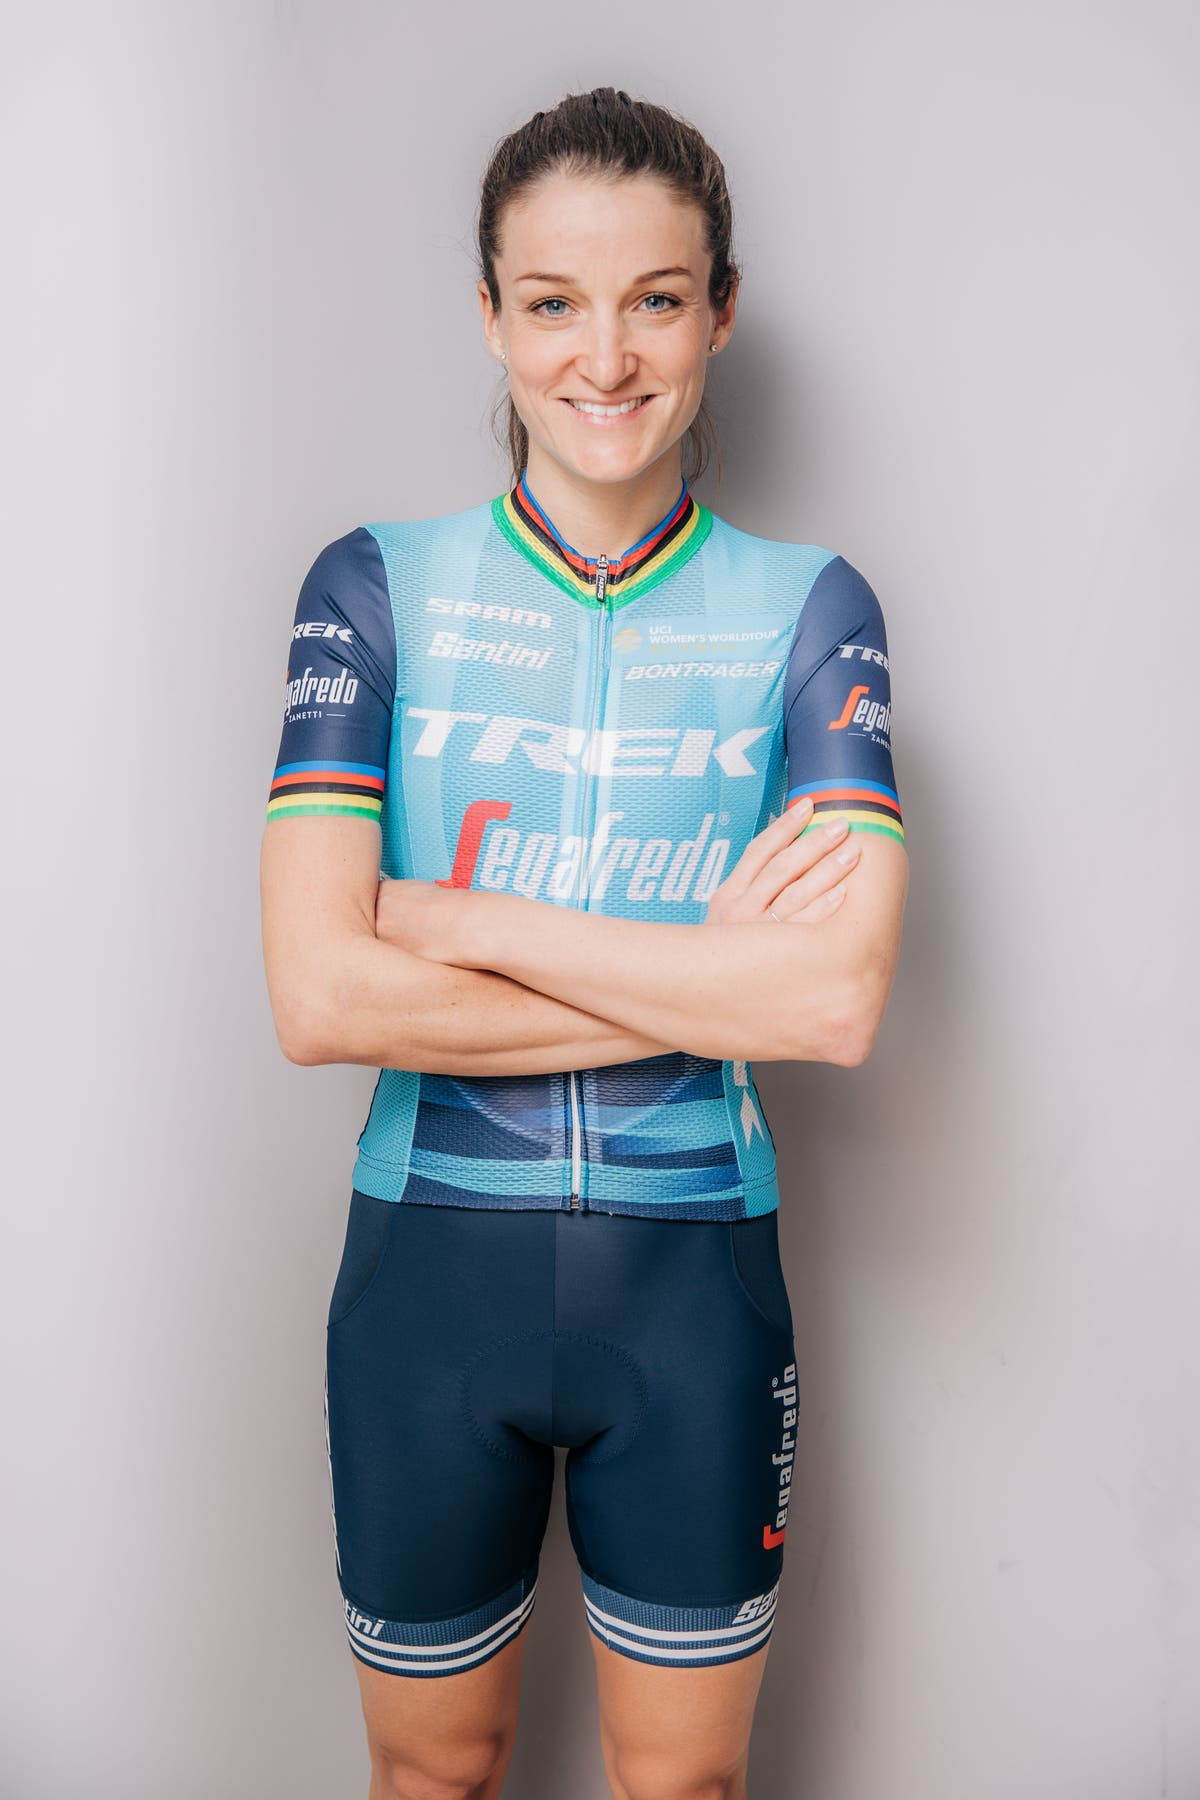 Team GB's Lizzie Deignan: It's an exciting time to be a female cyclist